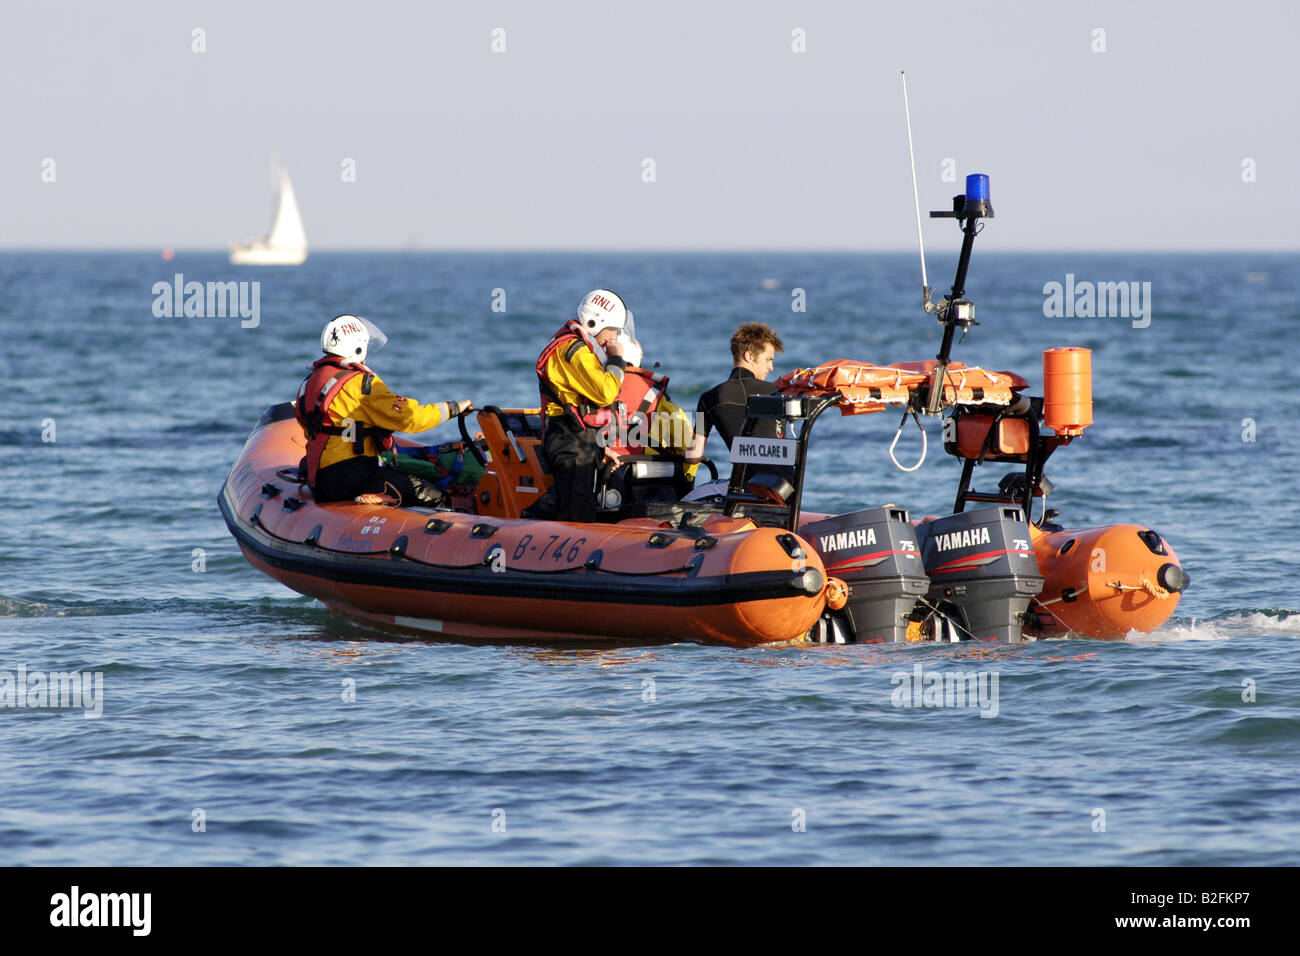 An RNLI inflatable RIB inshore lifeboat used for local water rescues in calm waters - Stock Image